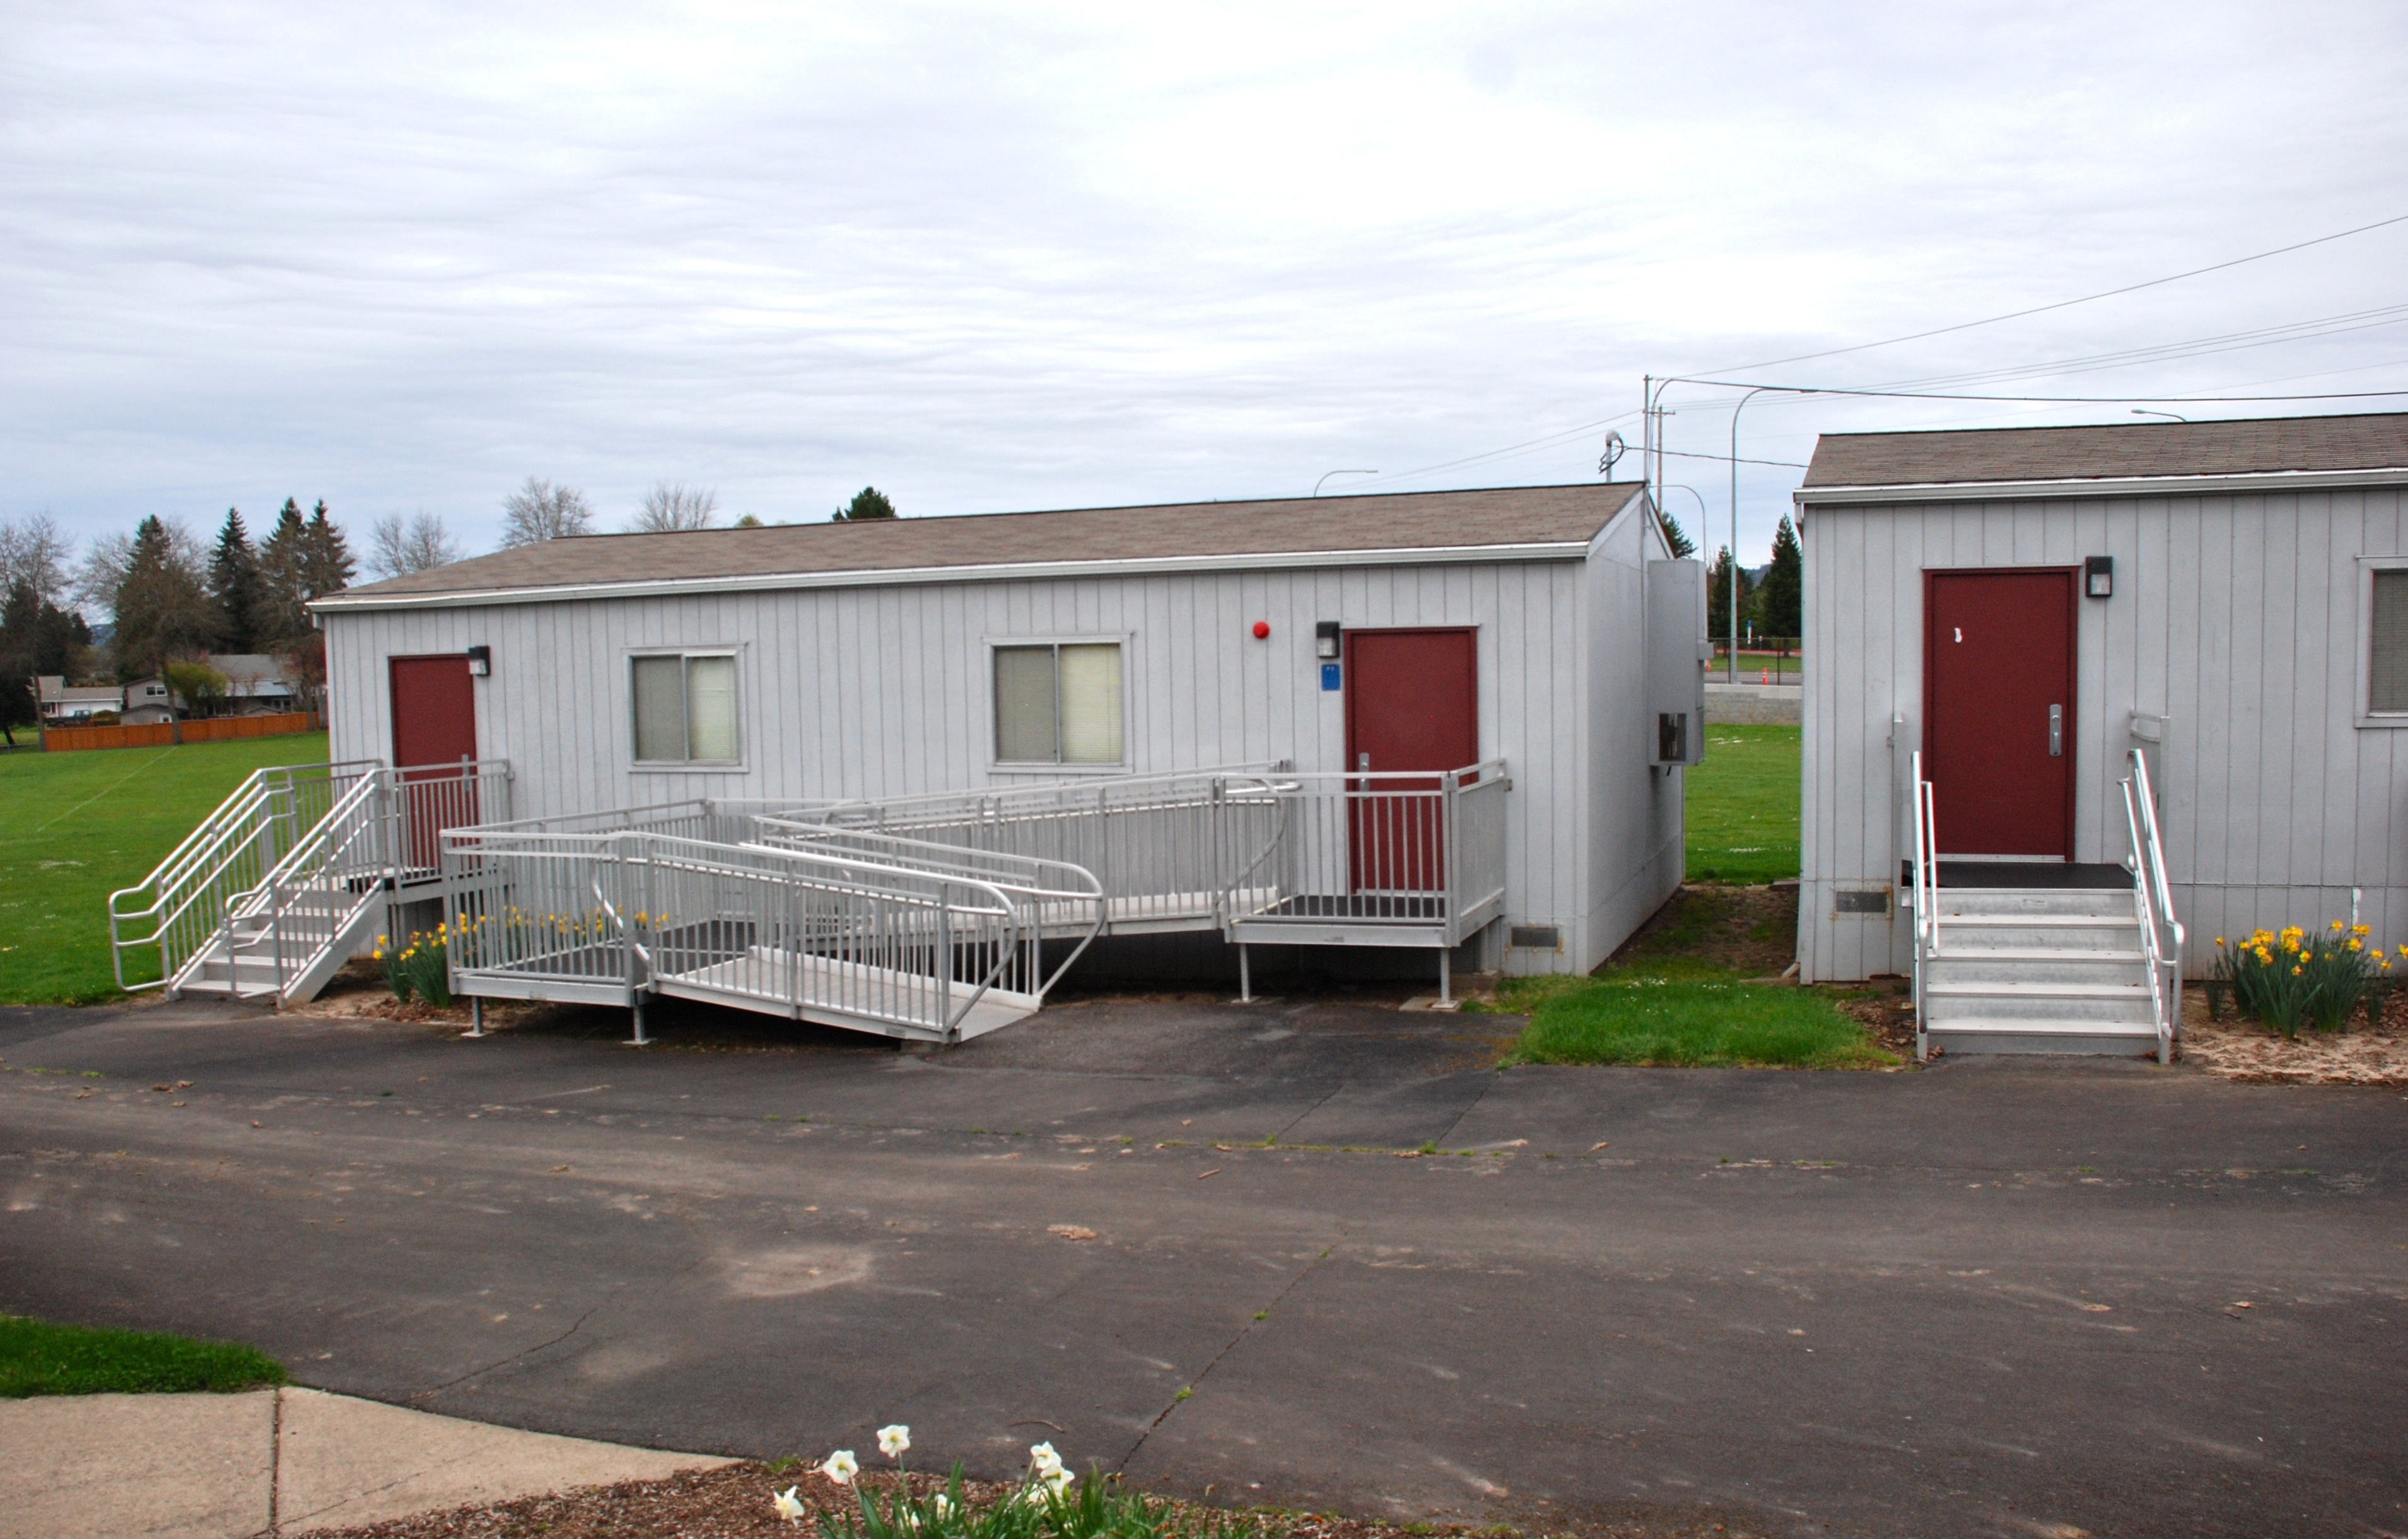 Demountable buildings like this can be used as offices when you hire event staff.